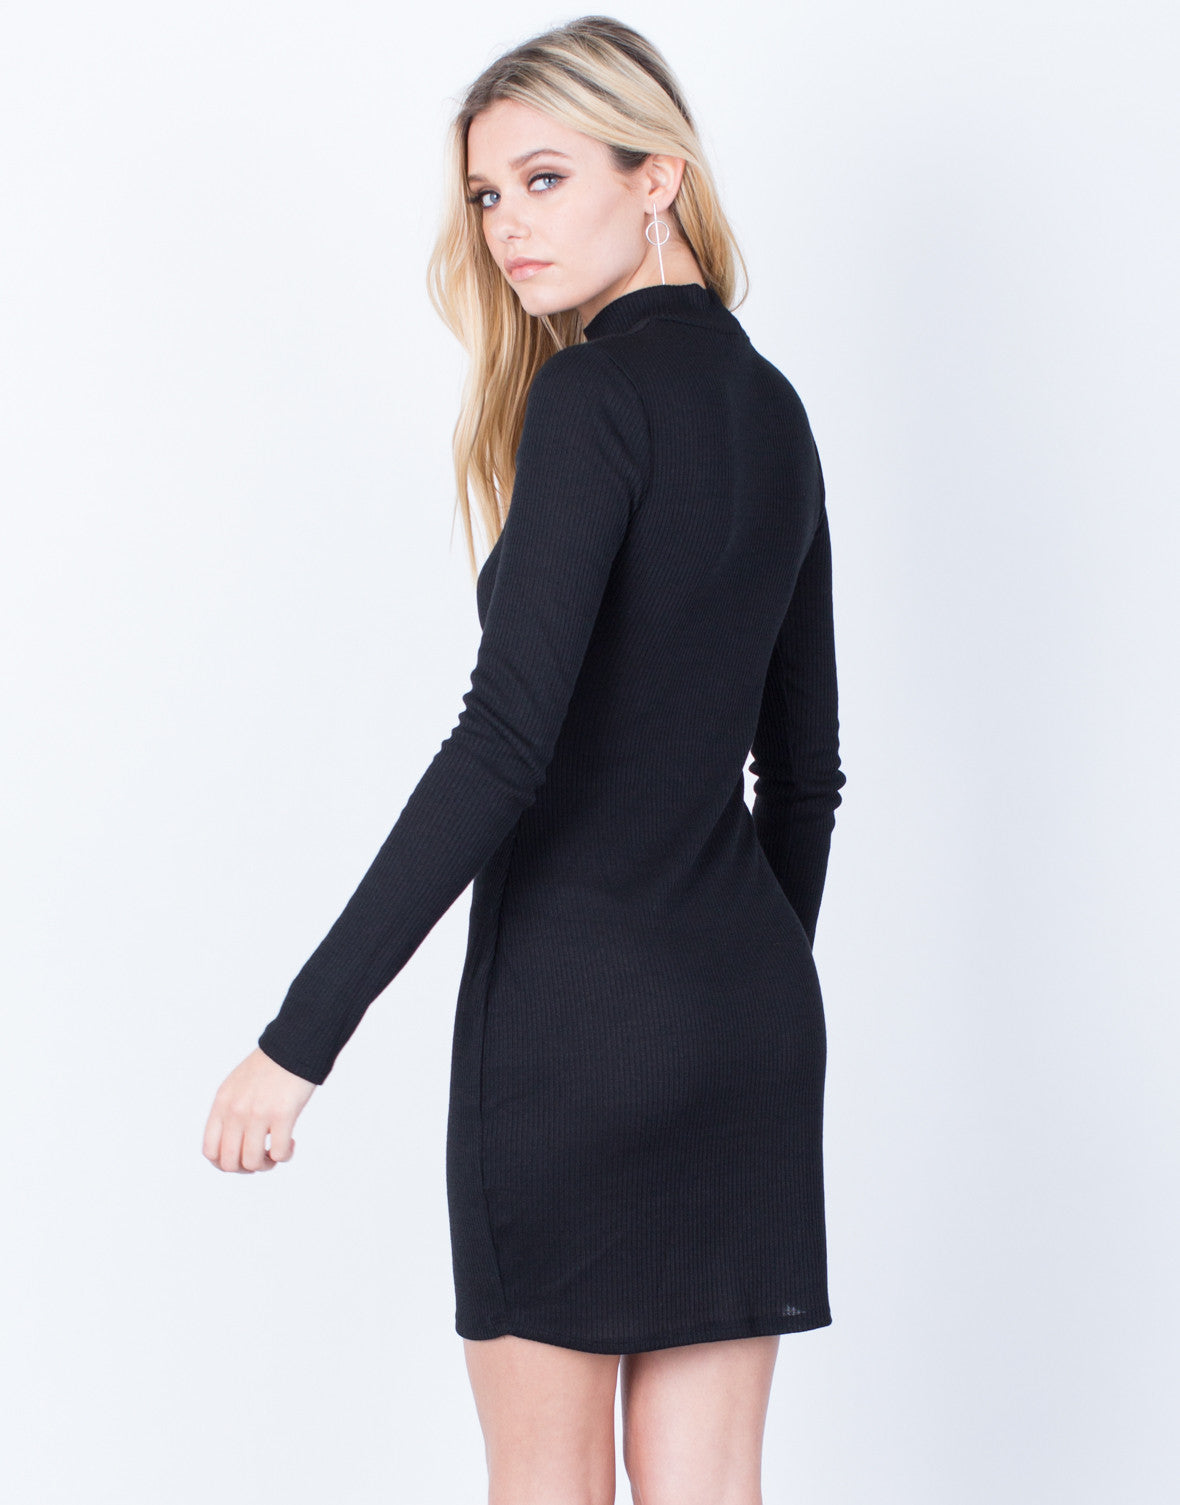 Back View of Your Go-To Black Dress